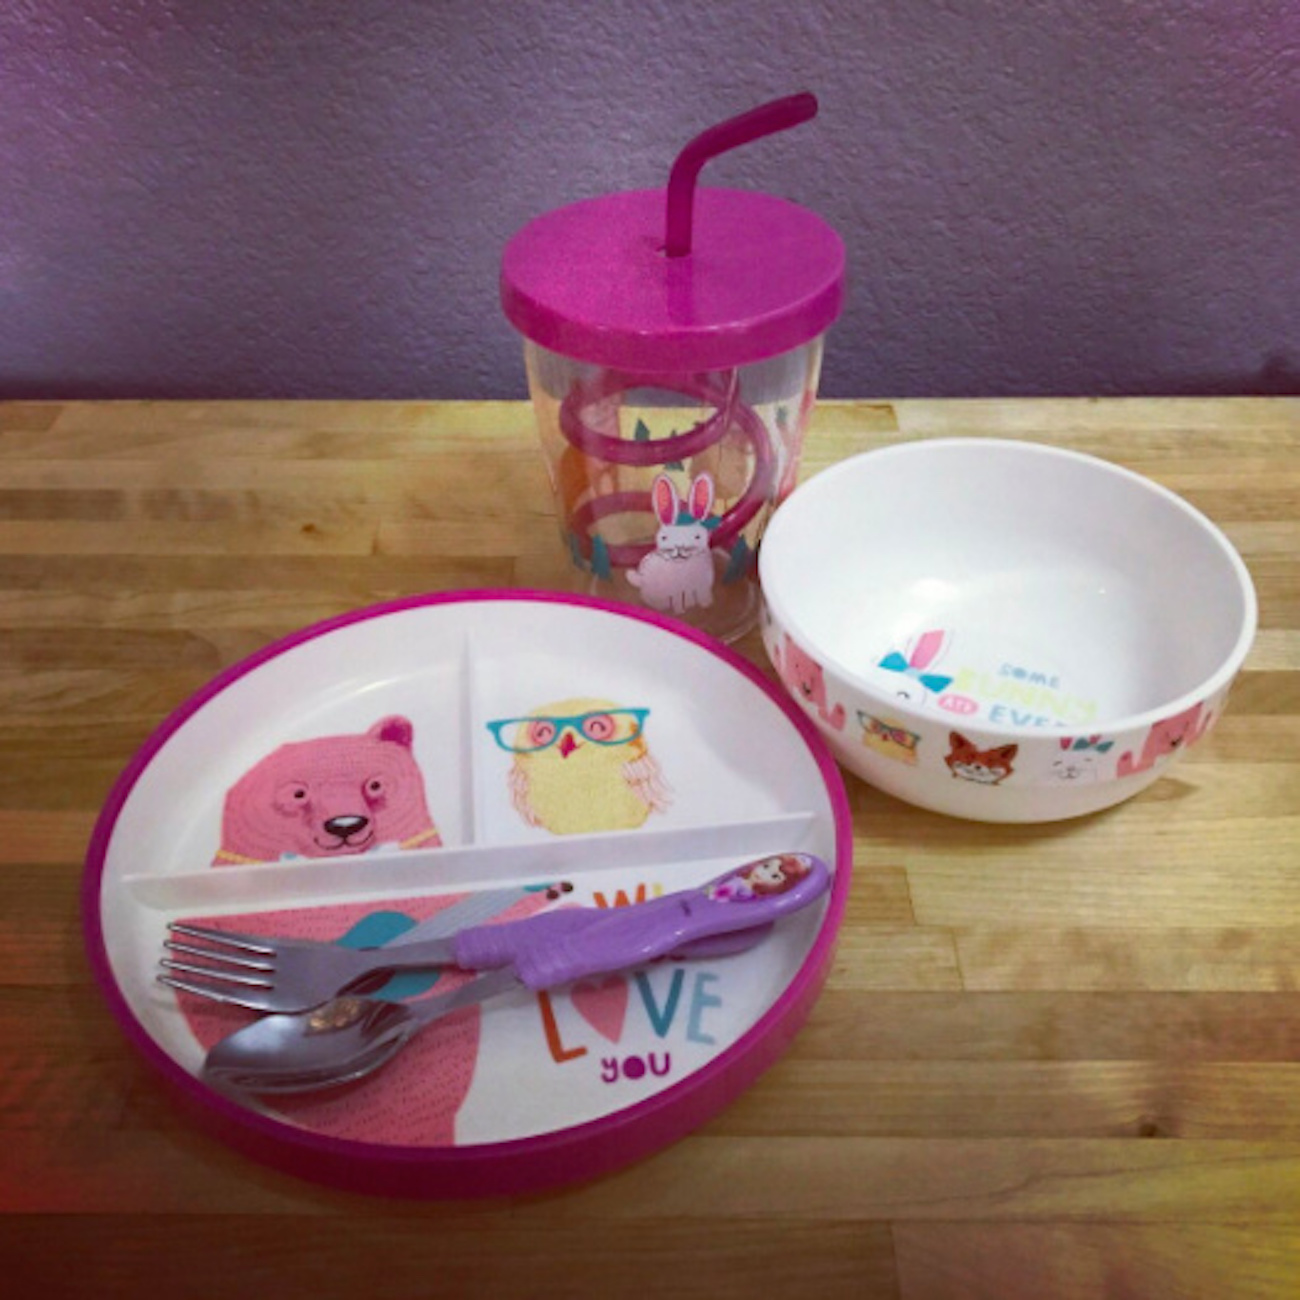 Child's plate with illustrations of animals on it, plus matching bowl, cup with a straw and eating utensils